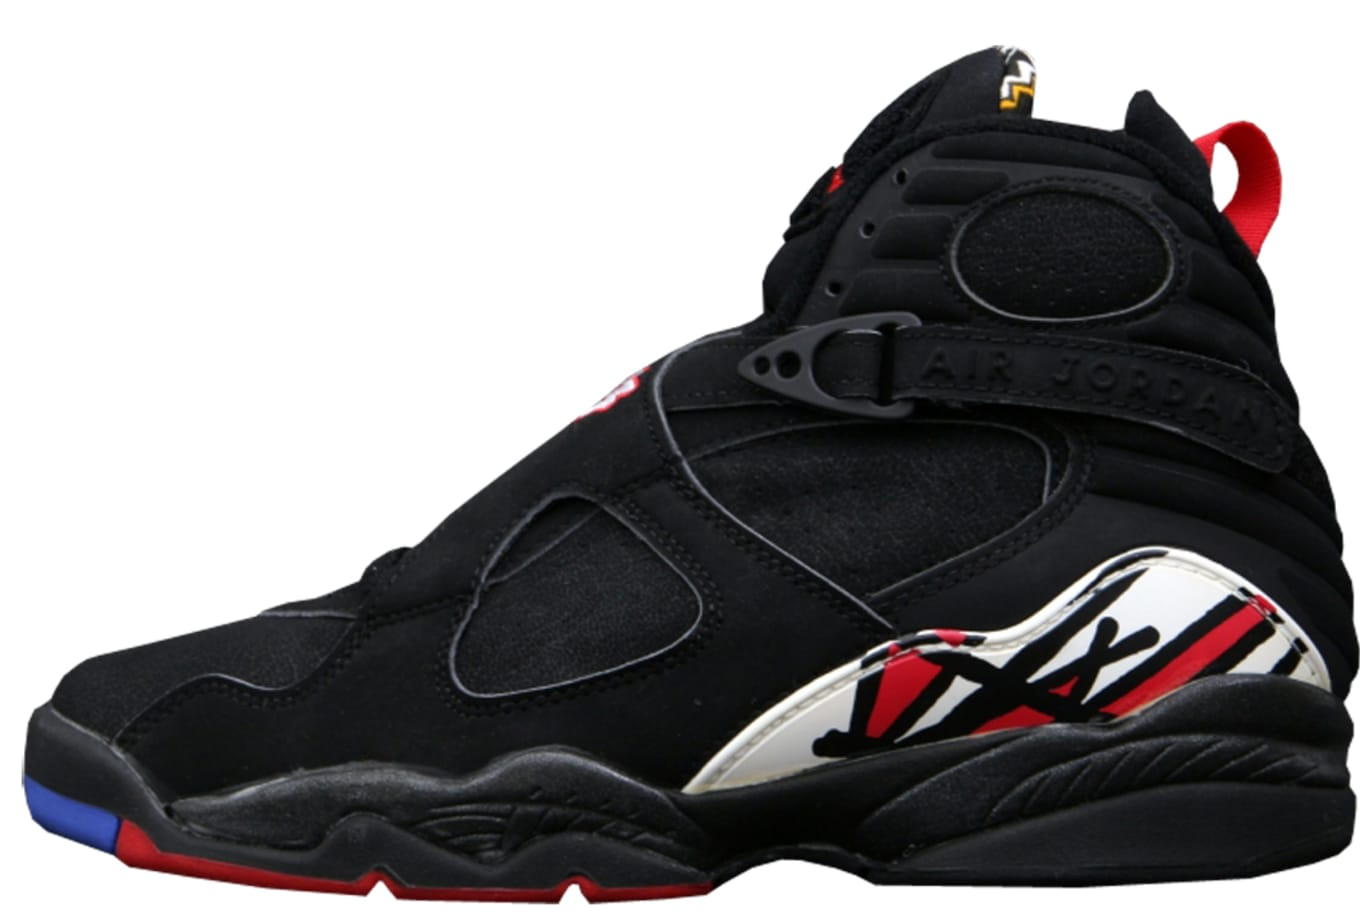 Air Jordan 8   The Definitive Guide to Colorways  f3ede5a2cb